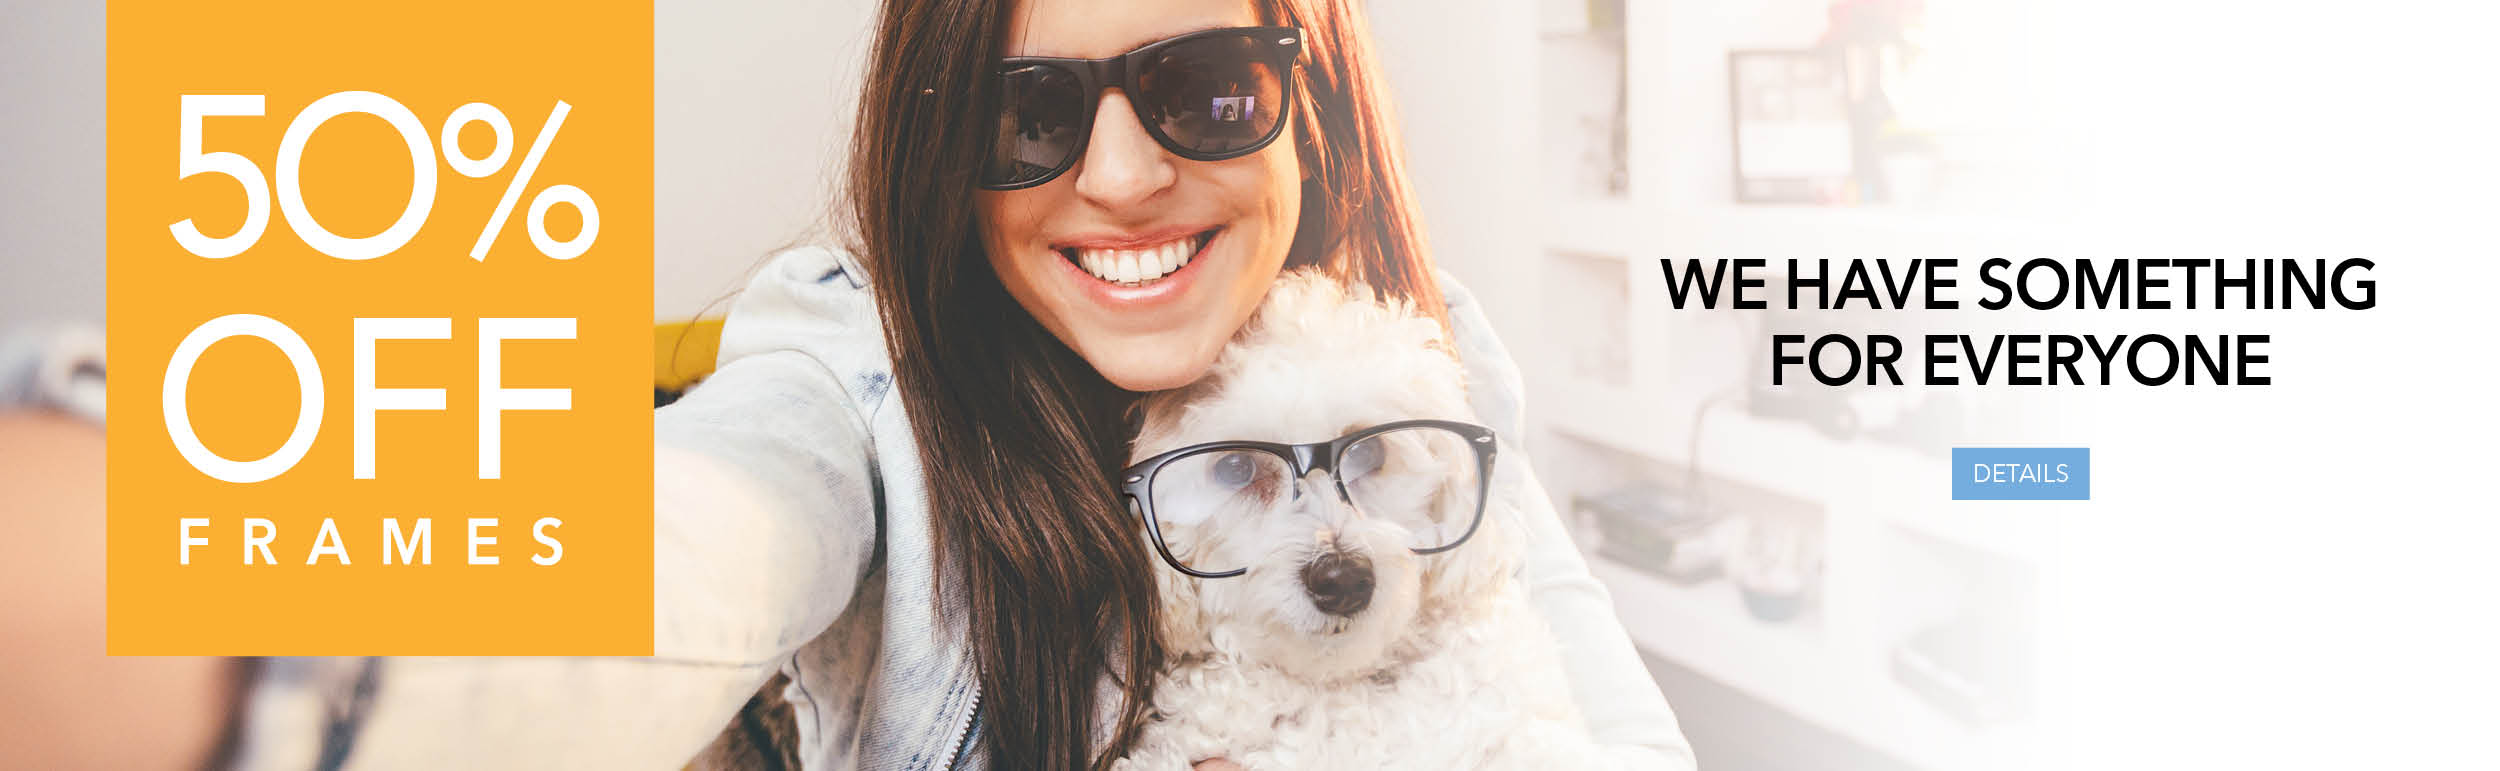 Get 50% off the frame when you buy a complete pair of prescription glasses